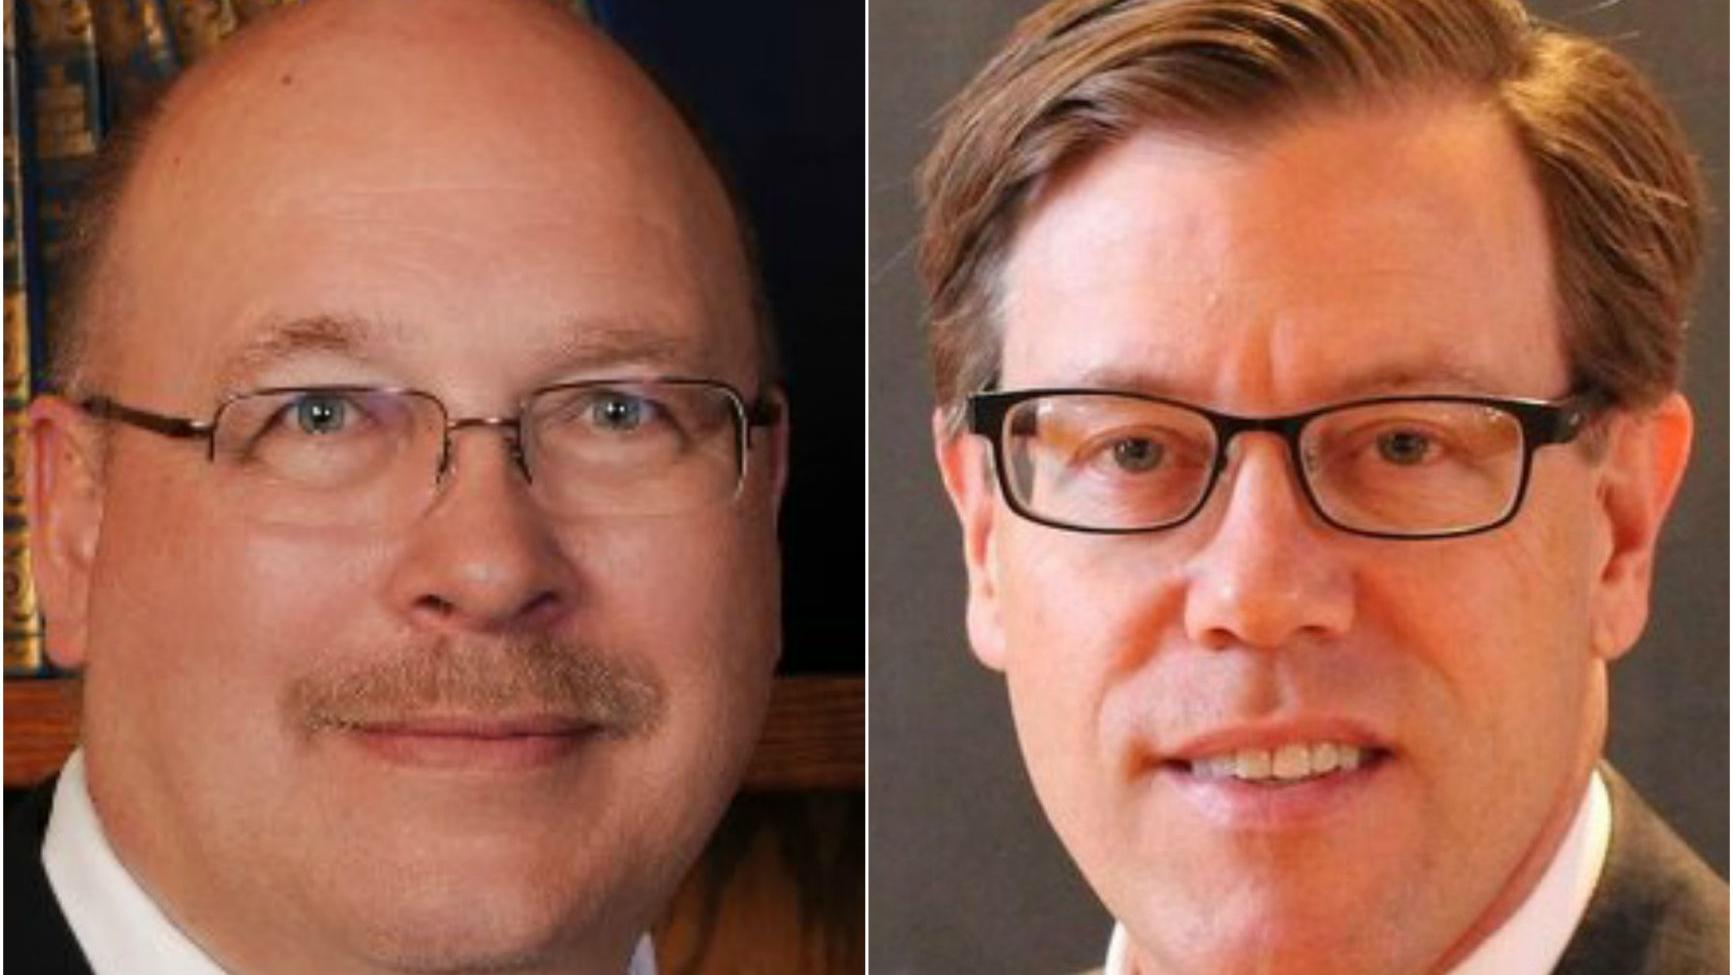 Elections commission: State superintendent candidates' alleged job offer deal not election bribery